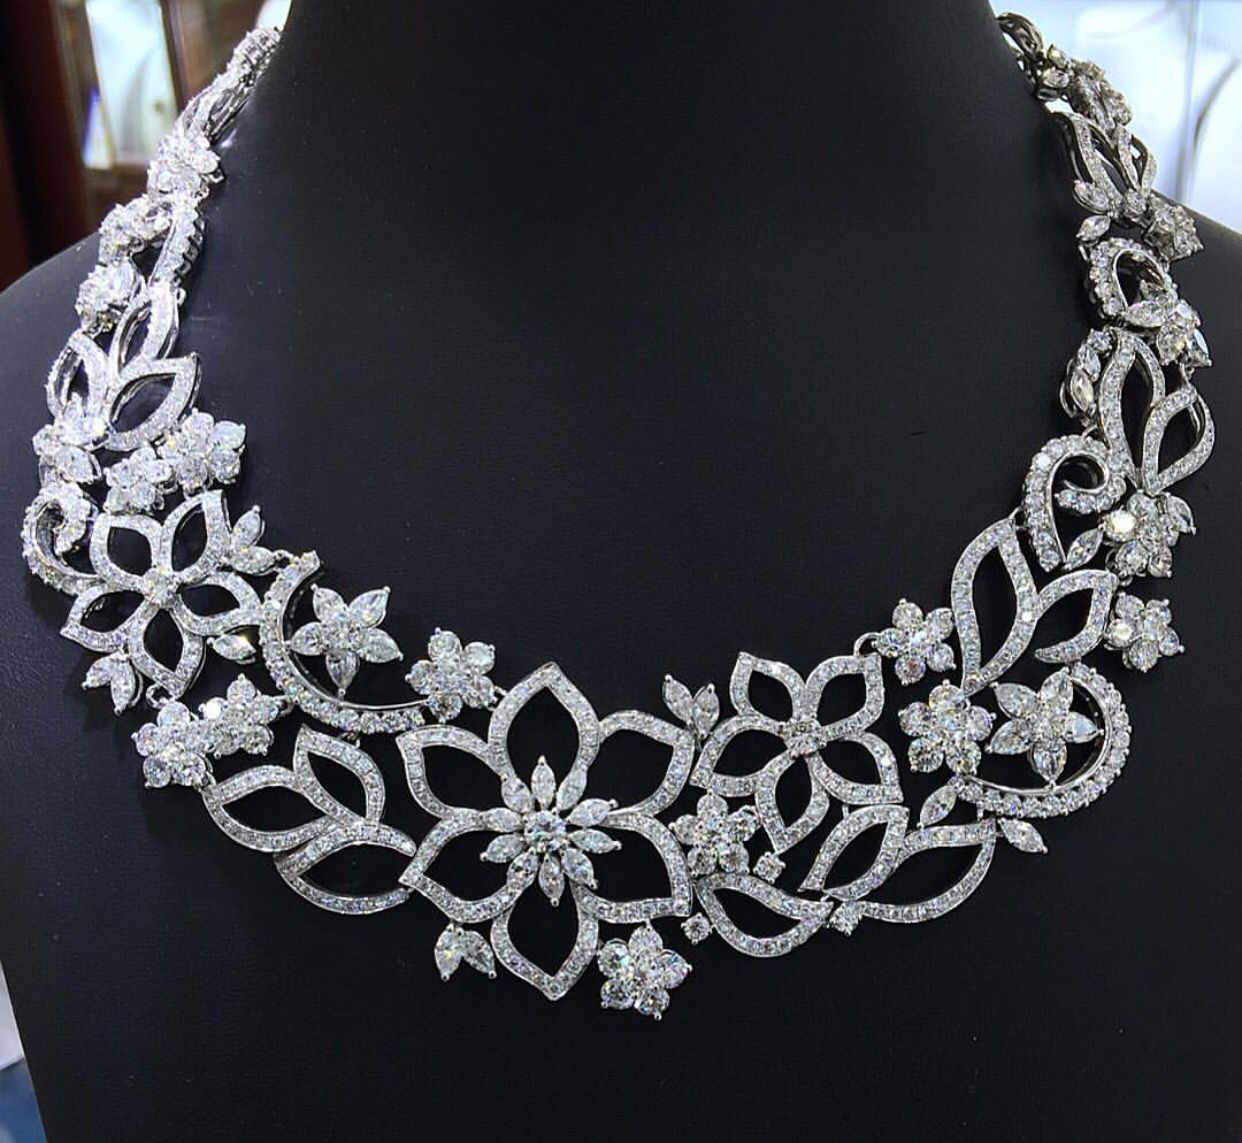 Gabrielleus amazing fantasy closet diamond necklace design